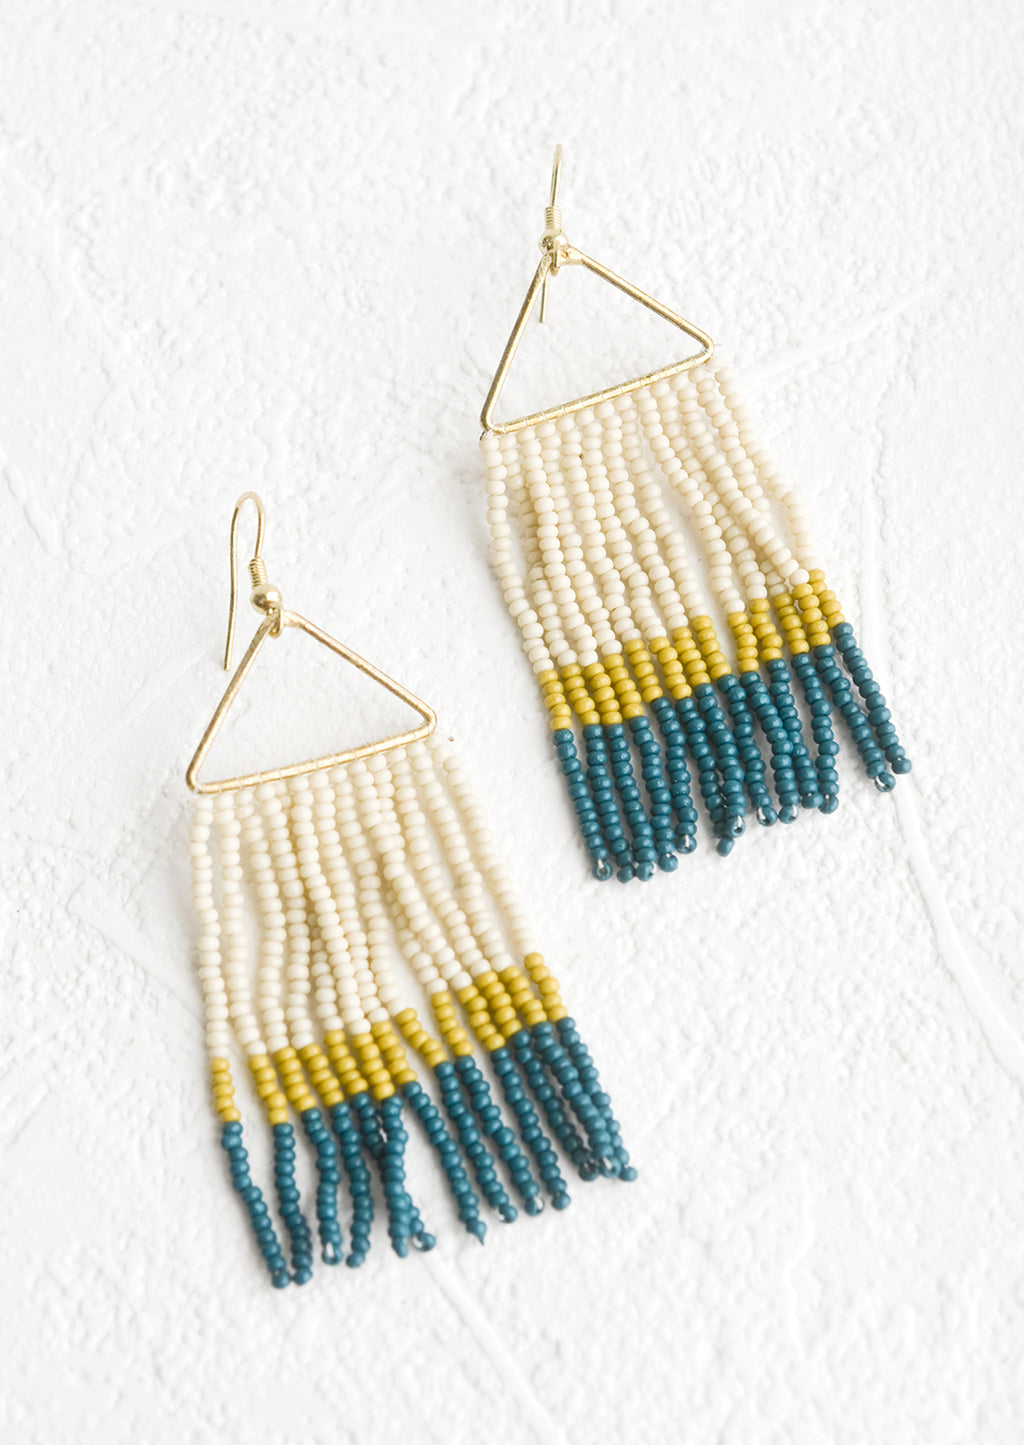 Citron / Teal Multi: Beaded earrings with triangular metal frame and fringed beads below